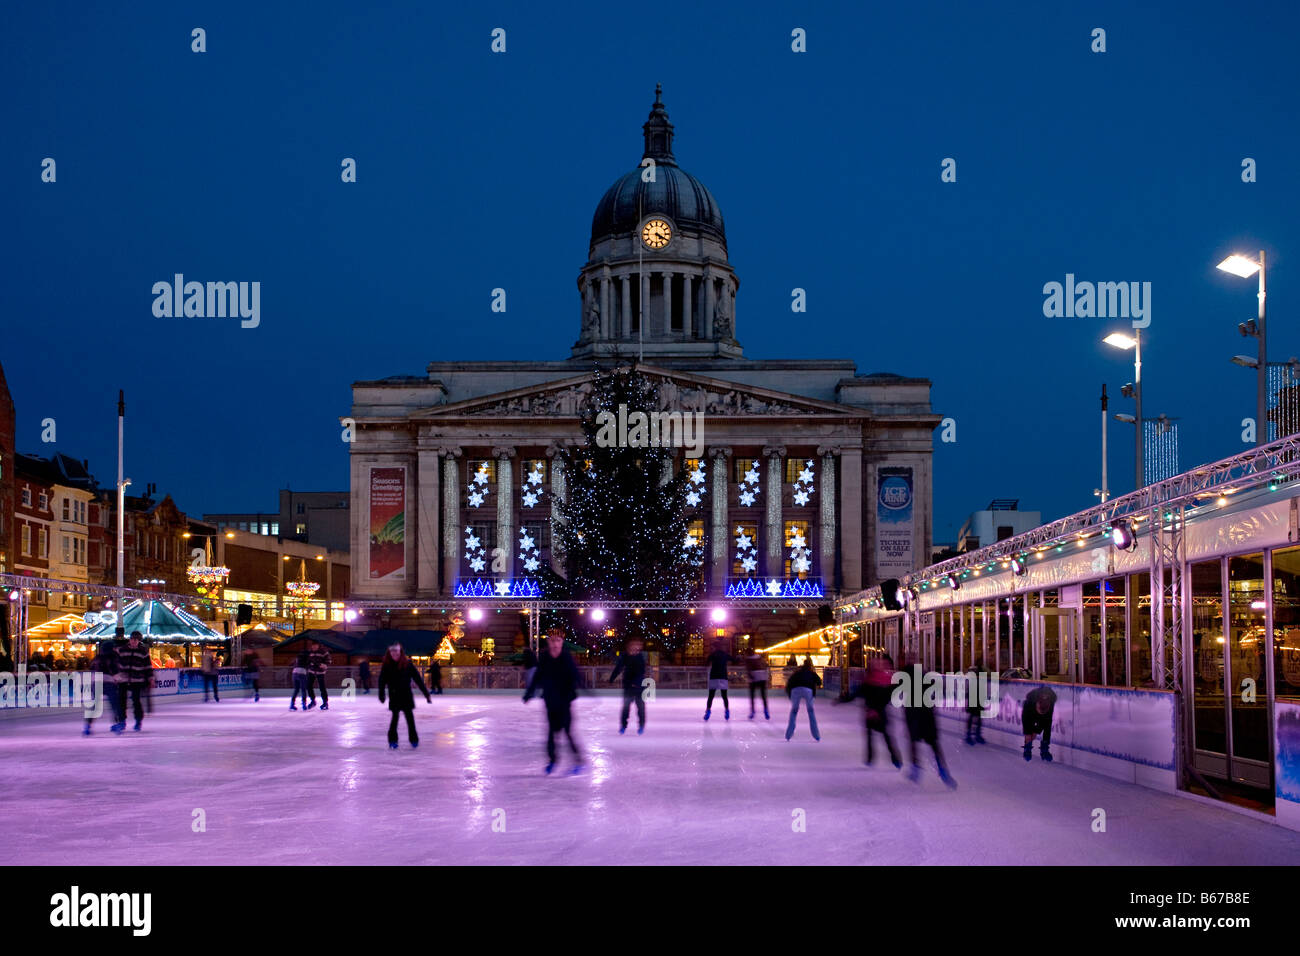 Nottingham town hall with Christmas lights and ice rink,england - Stock Image